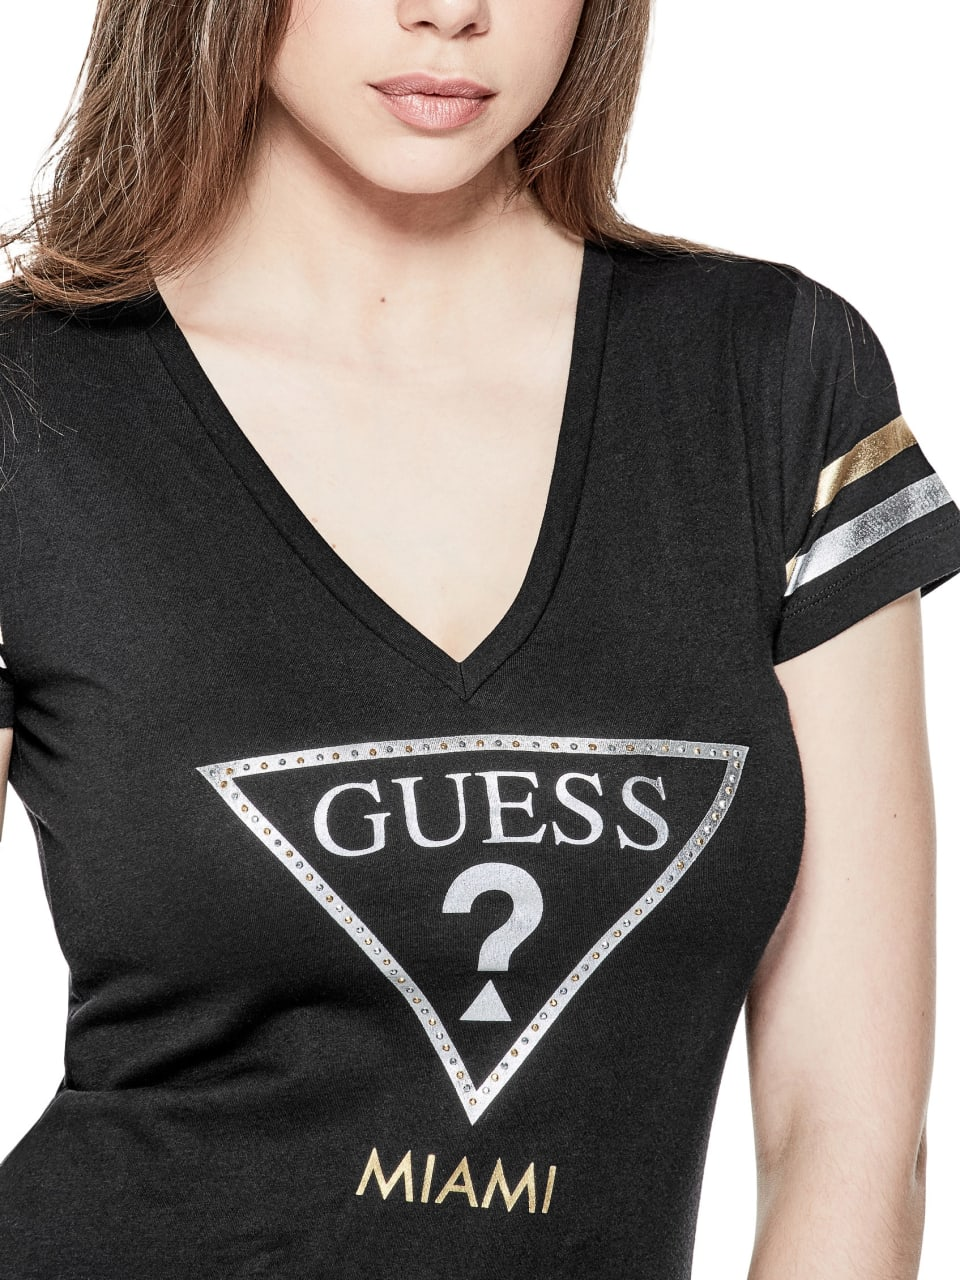 GUESS-Factory-Women-039-s-Miami-City-Tee thumbnail 7